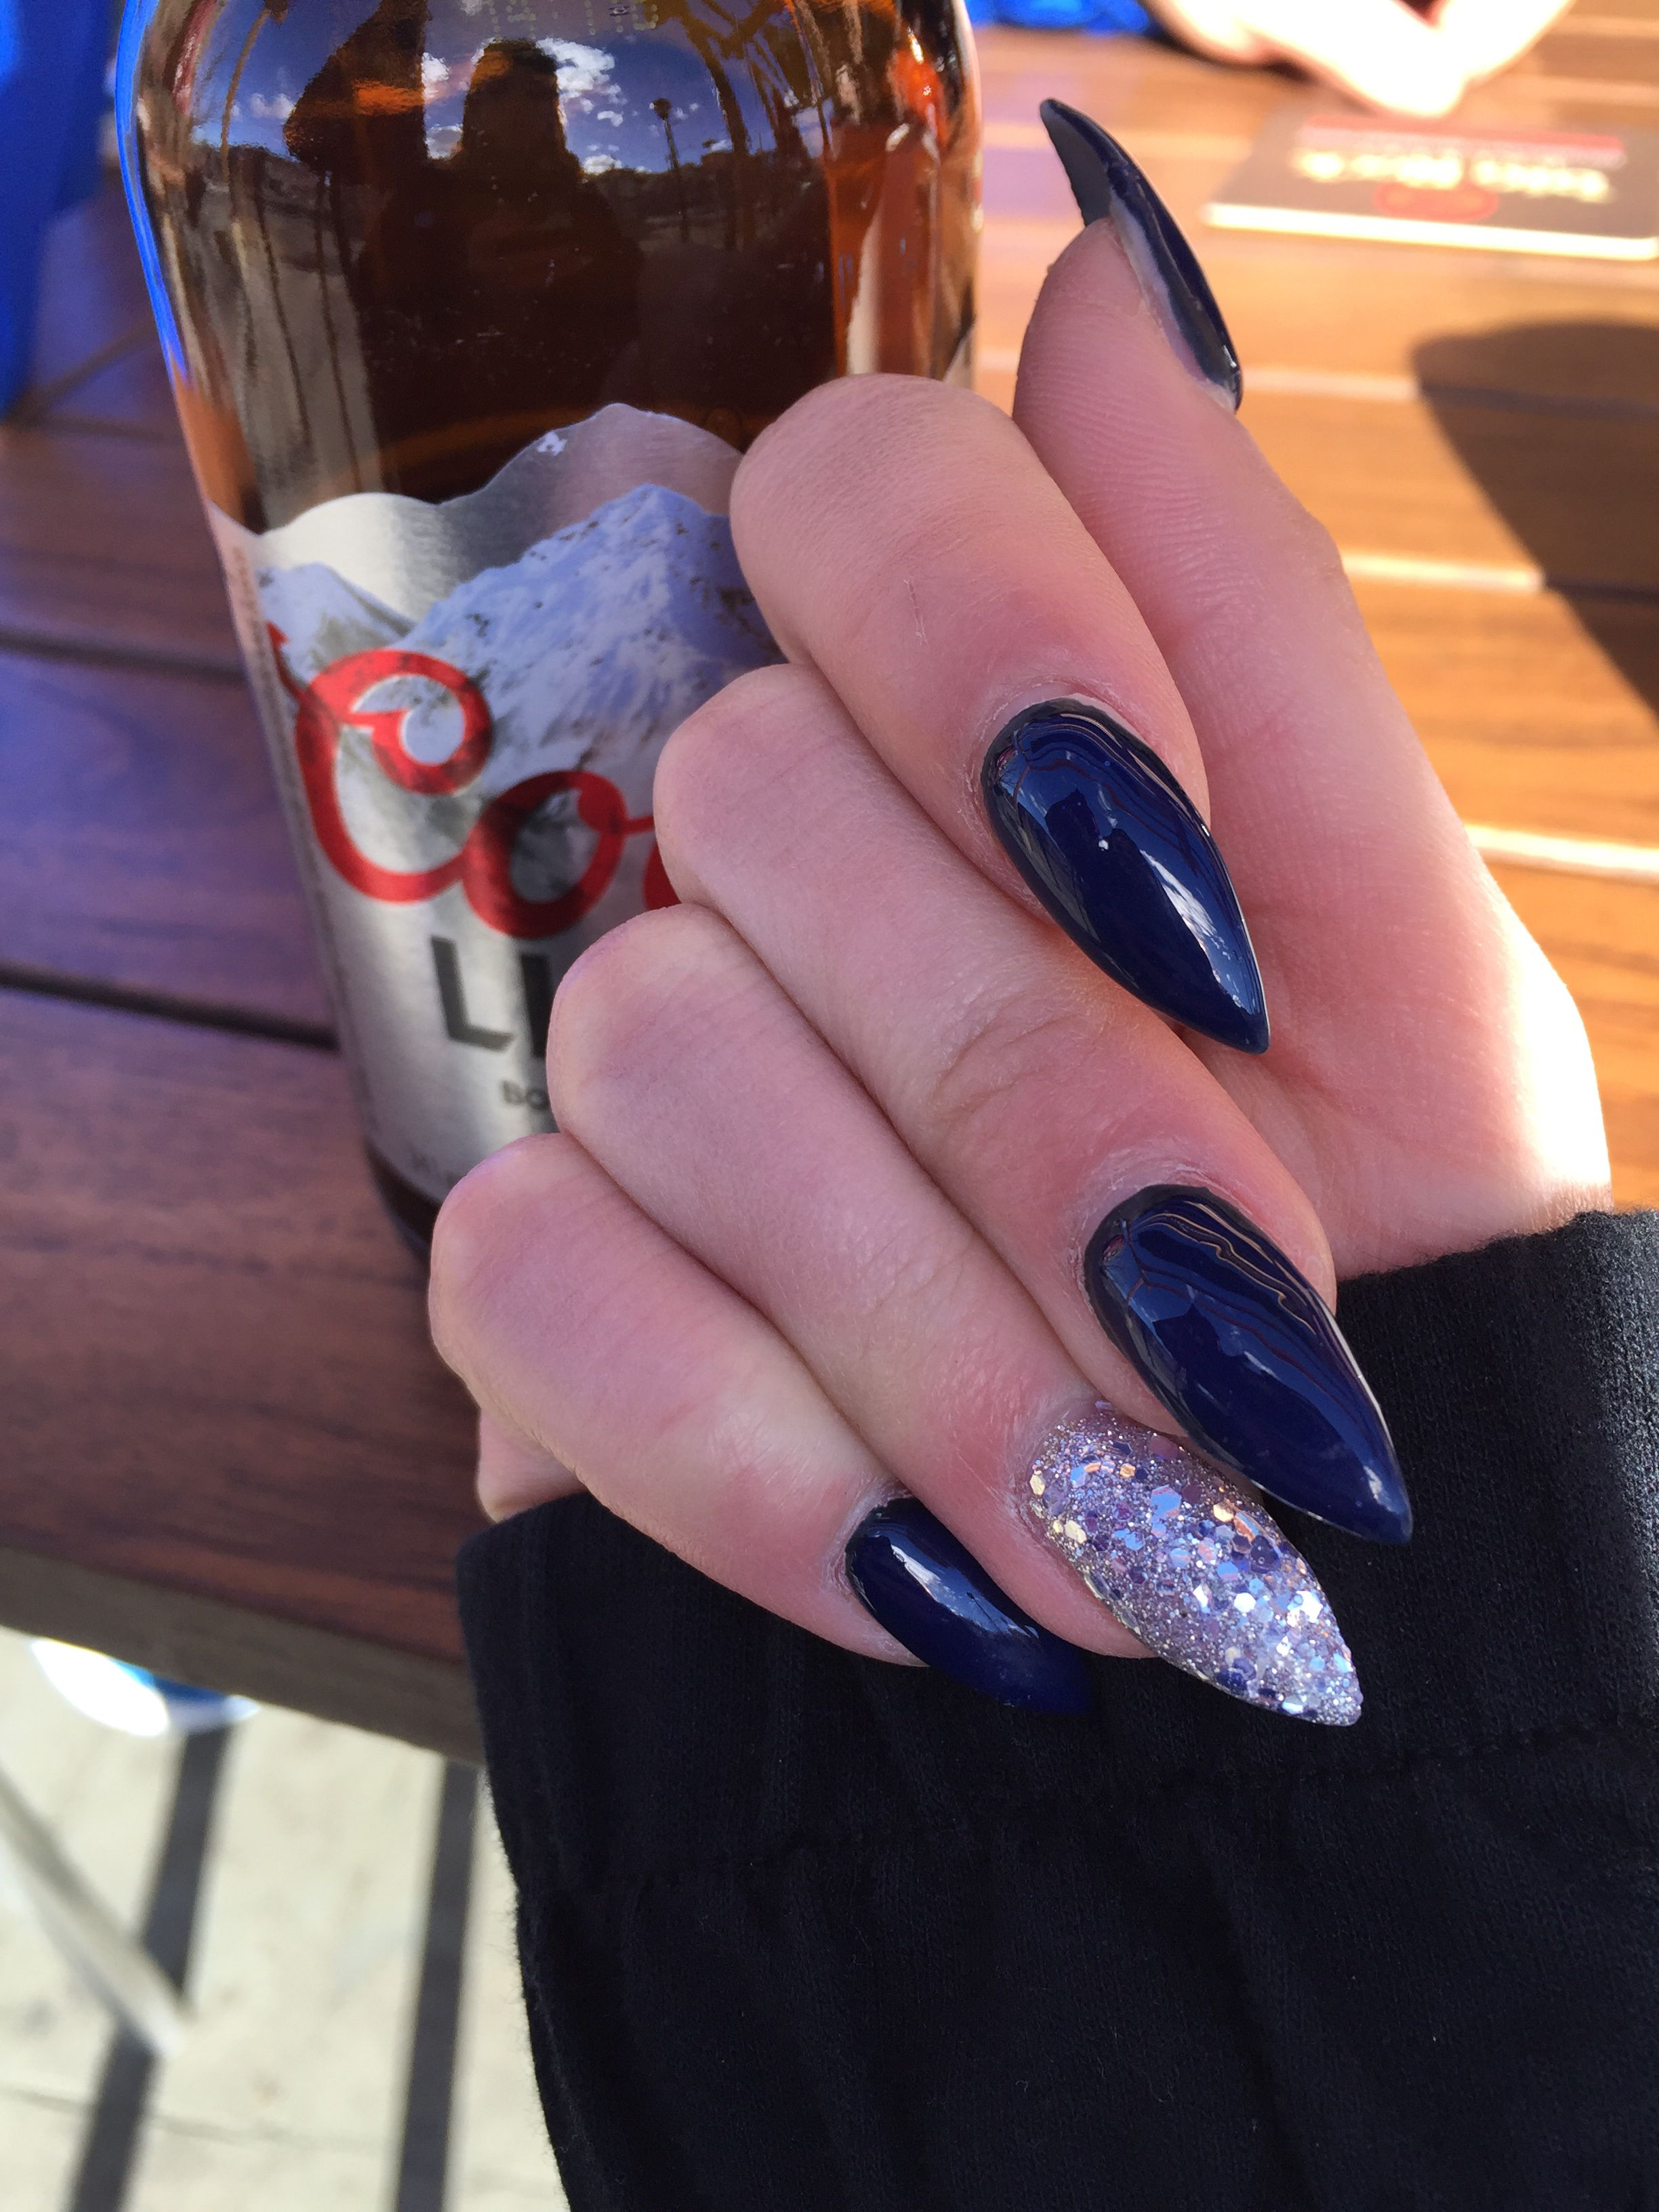 A set of Navy blue and sparkle stiletto nails | N a i l s ...